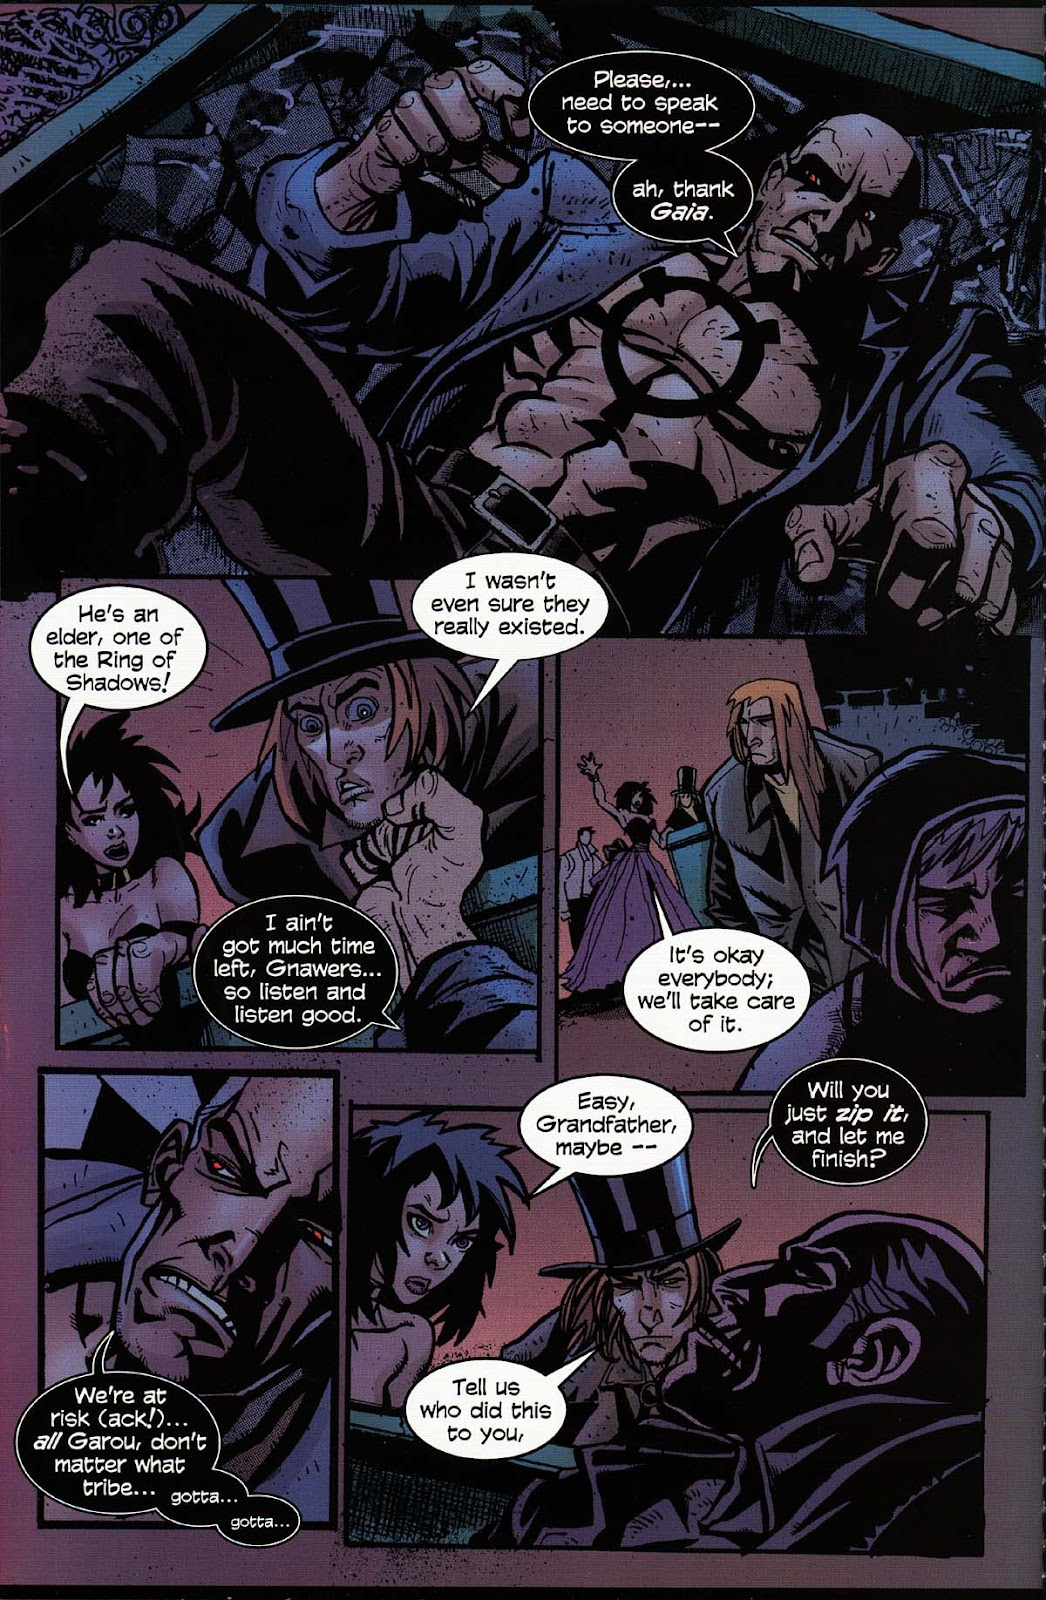 Read online Werewolf the Apocalypse comic -  Issue # Bone Gnawers - 10